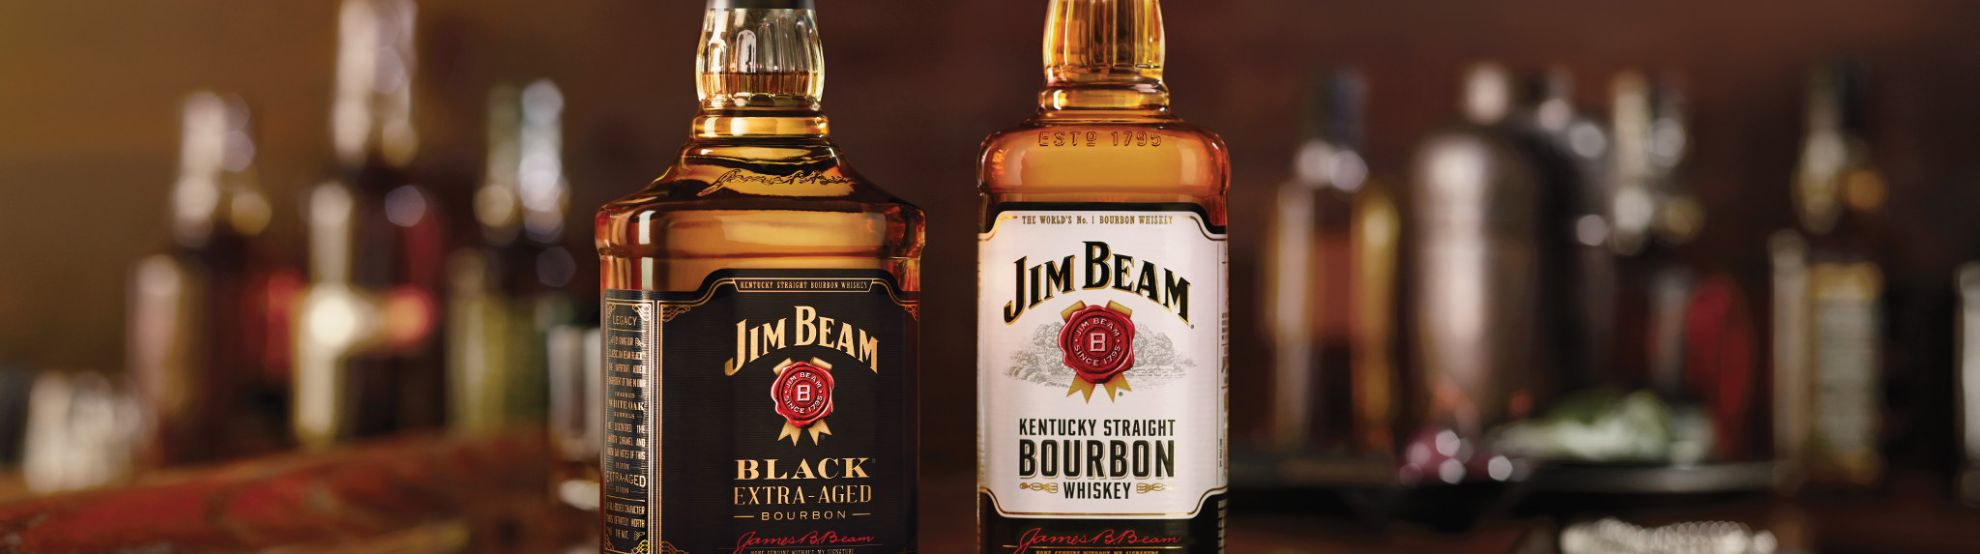 Jim Beam Black | Jim Beam White